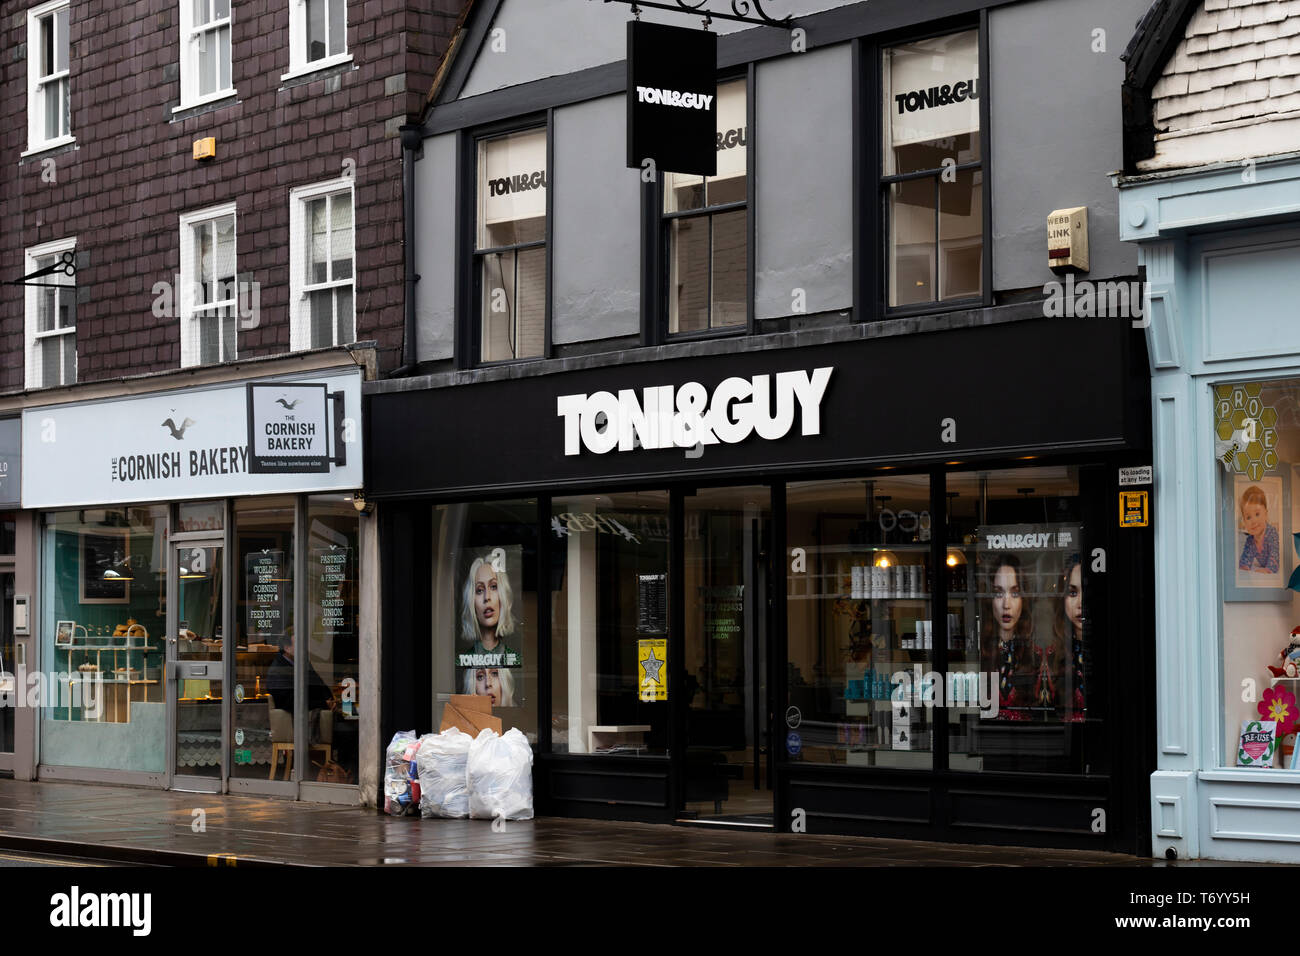 9b351153536 Toni and Guy unisex hairdressers, British international chain of hairdressing  salons founded in the UK